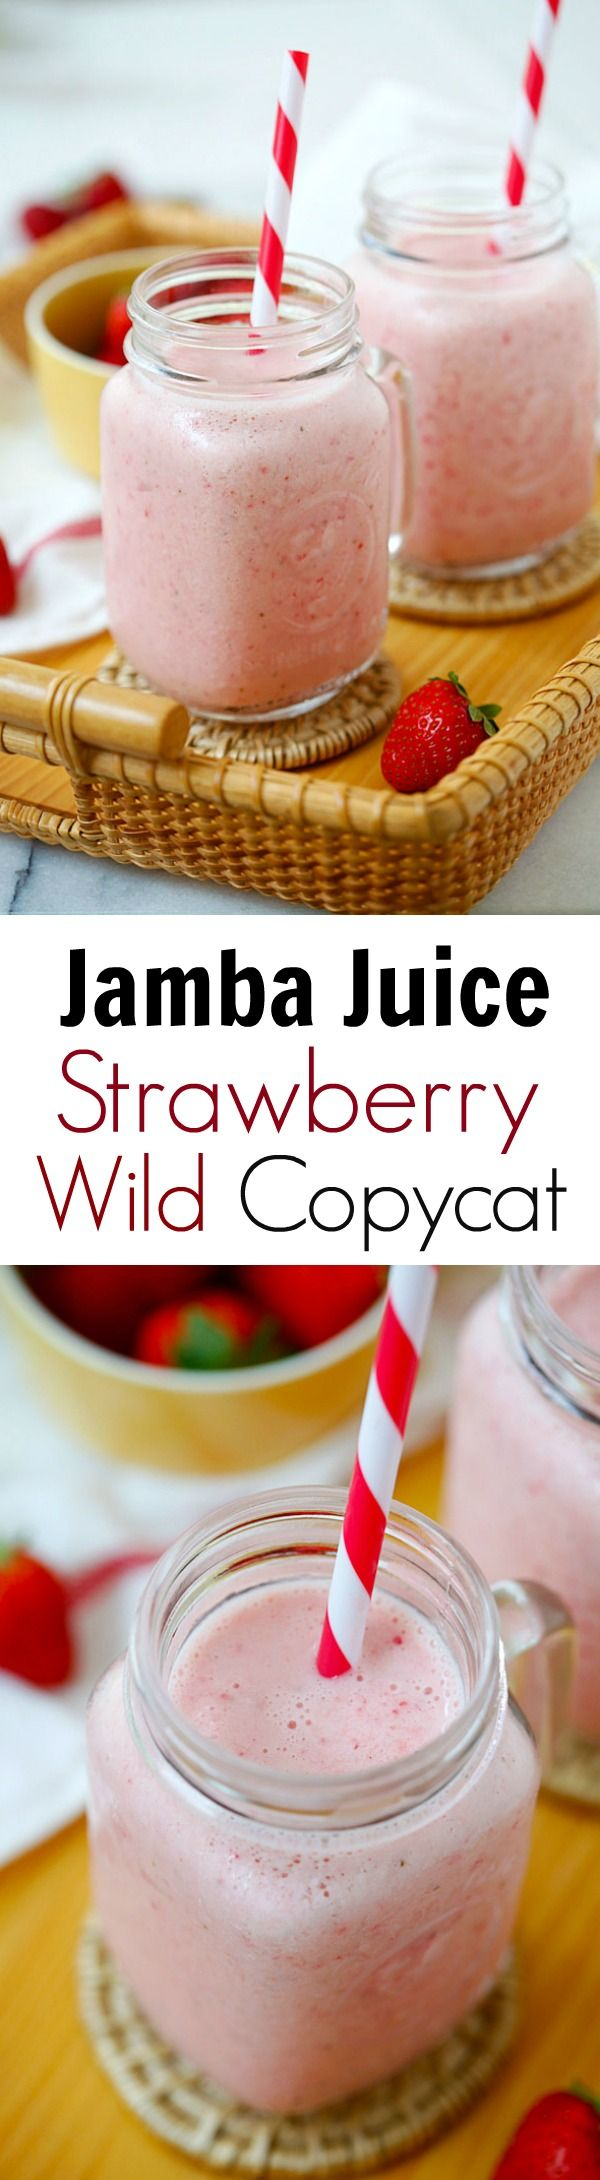 Jamba Juice Strawberry Wild Copycat – the easiest recipe that is exactly like the real smoothie at Jamba Juice. It's healthy and budget-friendly   rasamalaysia.com